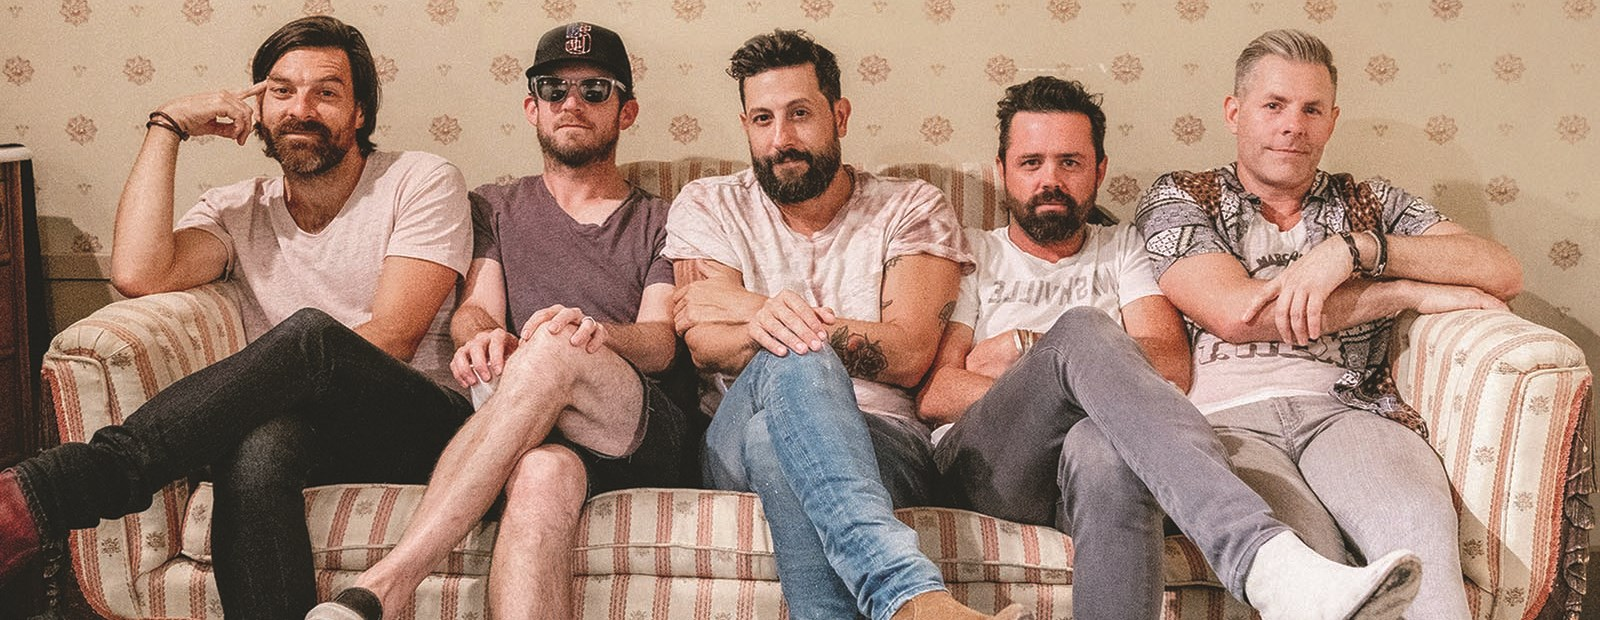 Old Dominion band members on a couch